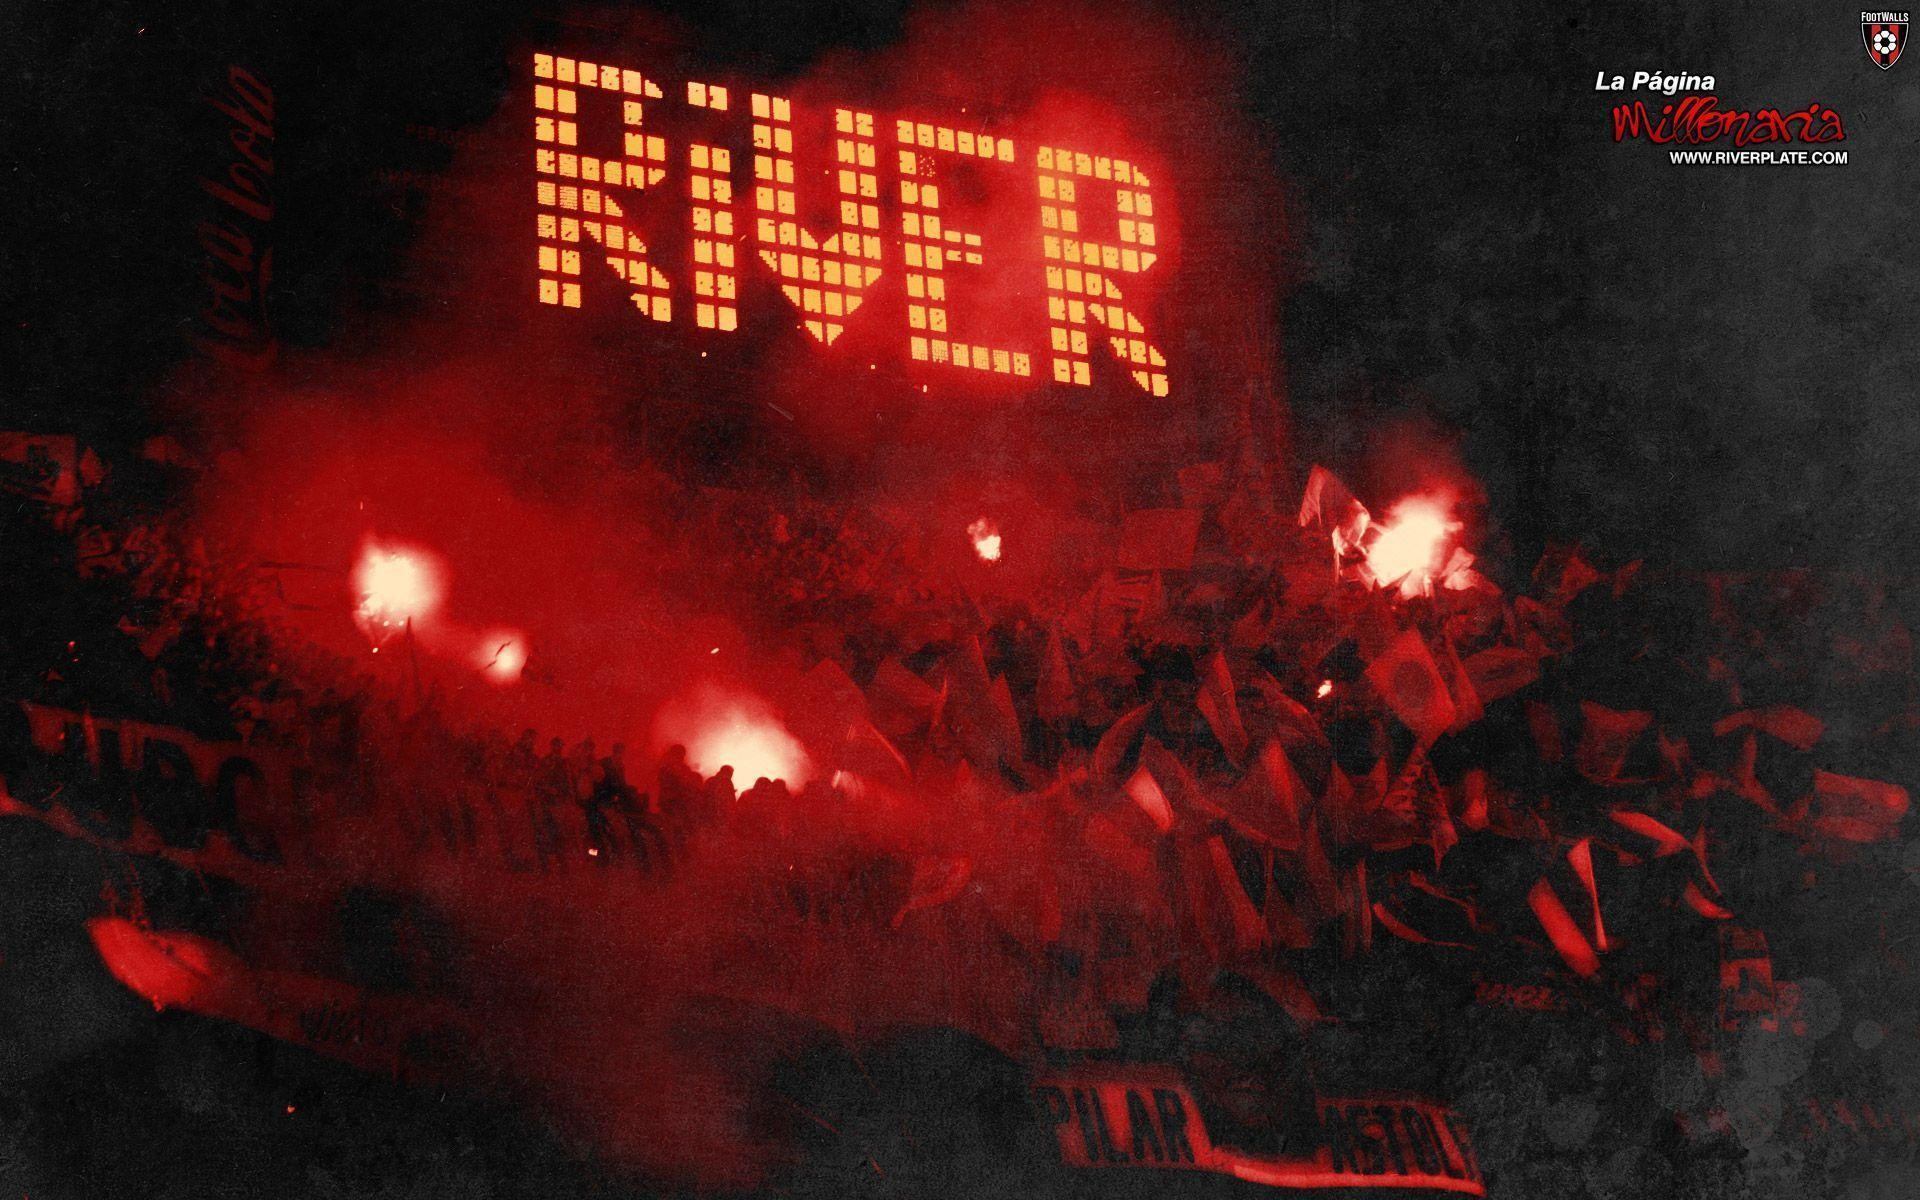 1920x1200 River Plate Wallpaper #9 - Football Wallpapers ...